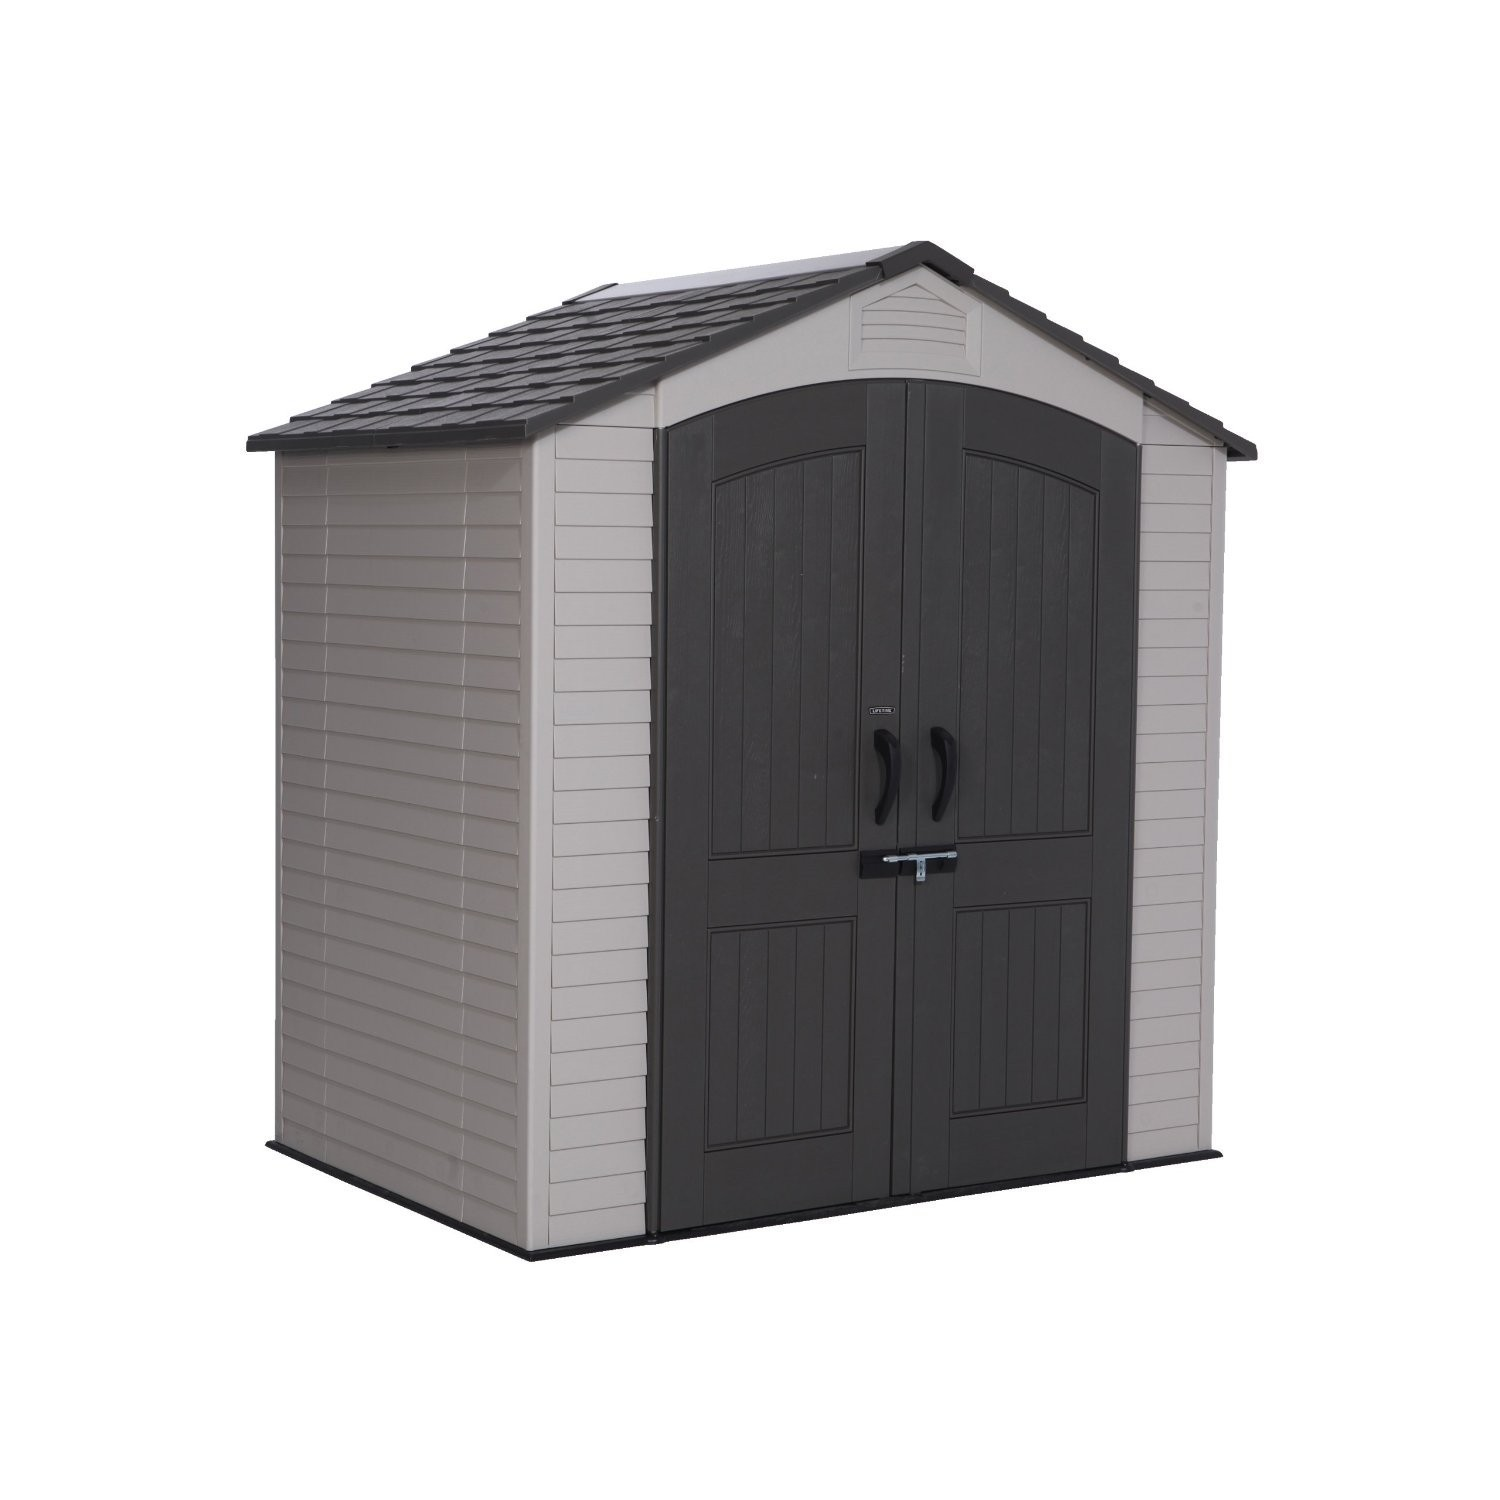 Lifetime Plastic Shed 7'x4'5